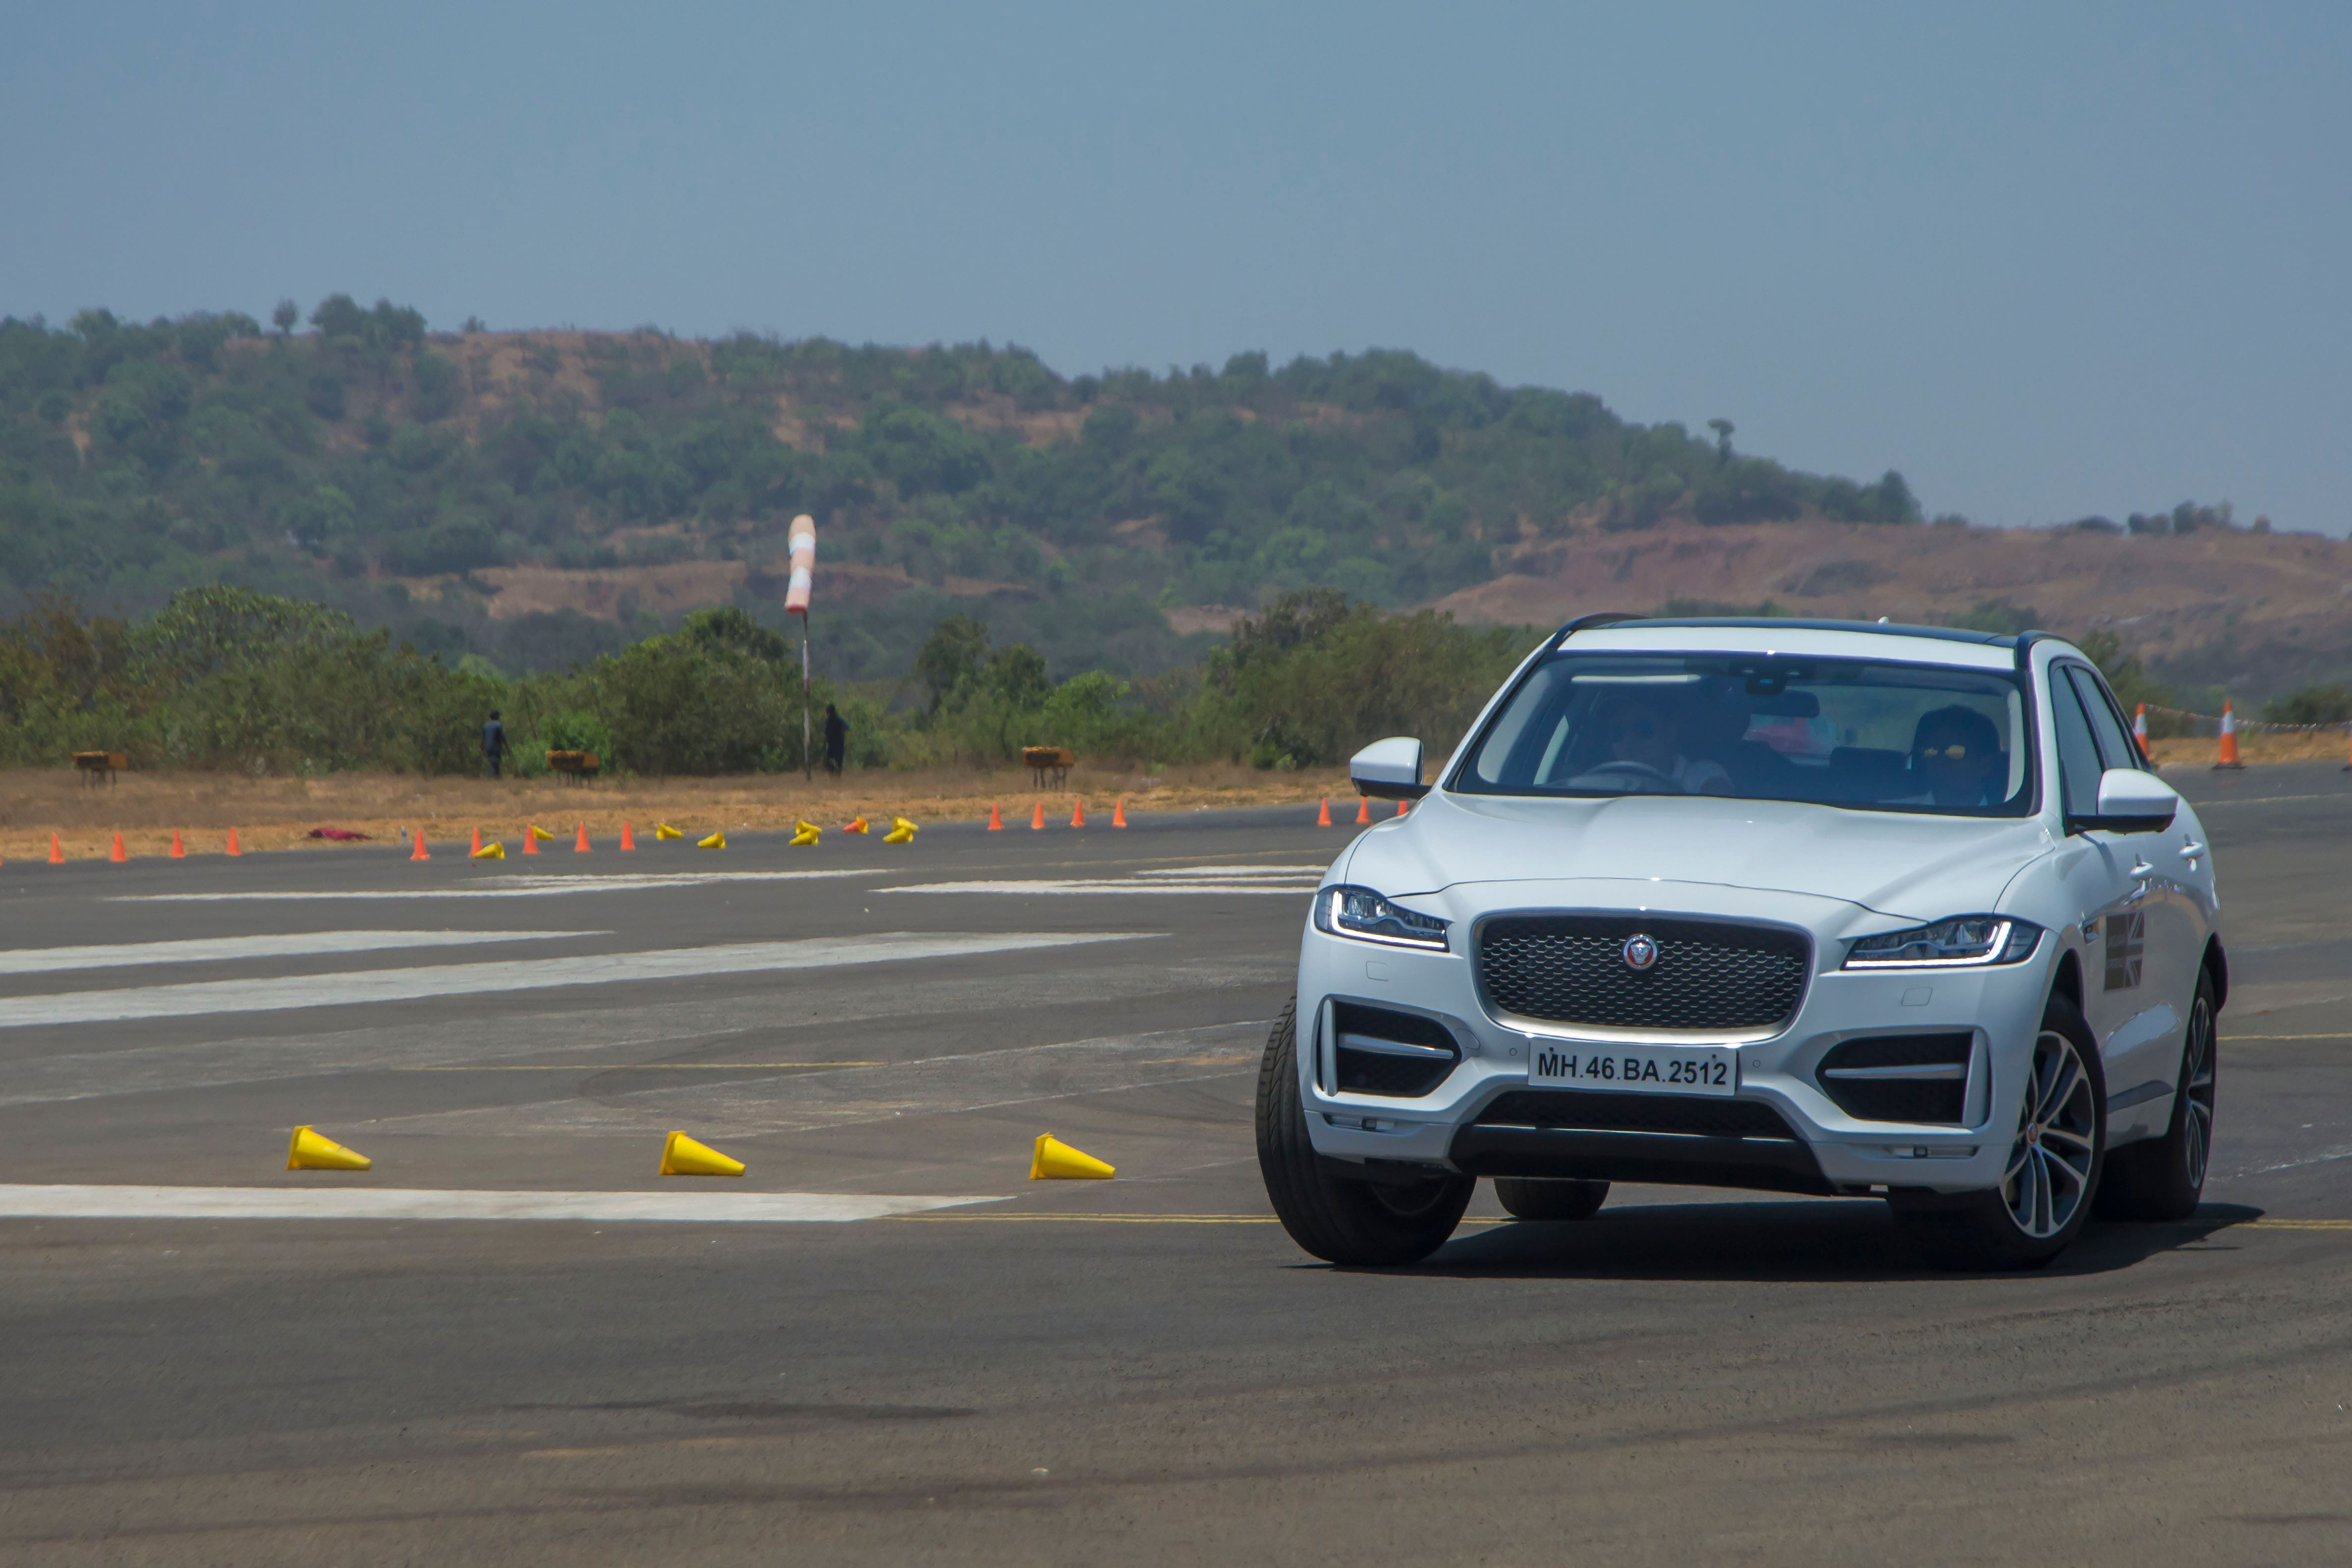 Jaguar 'Art of Performance' tour all set to reach Chandigarh